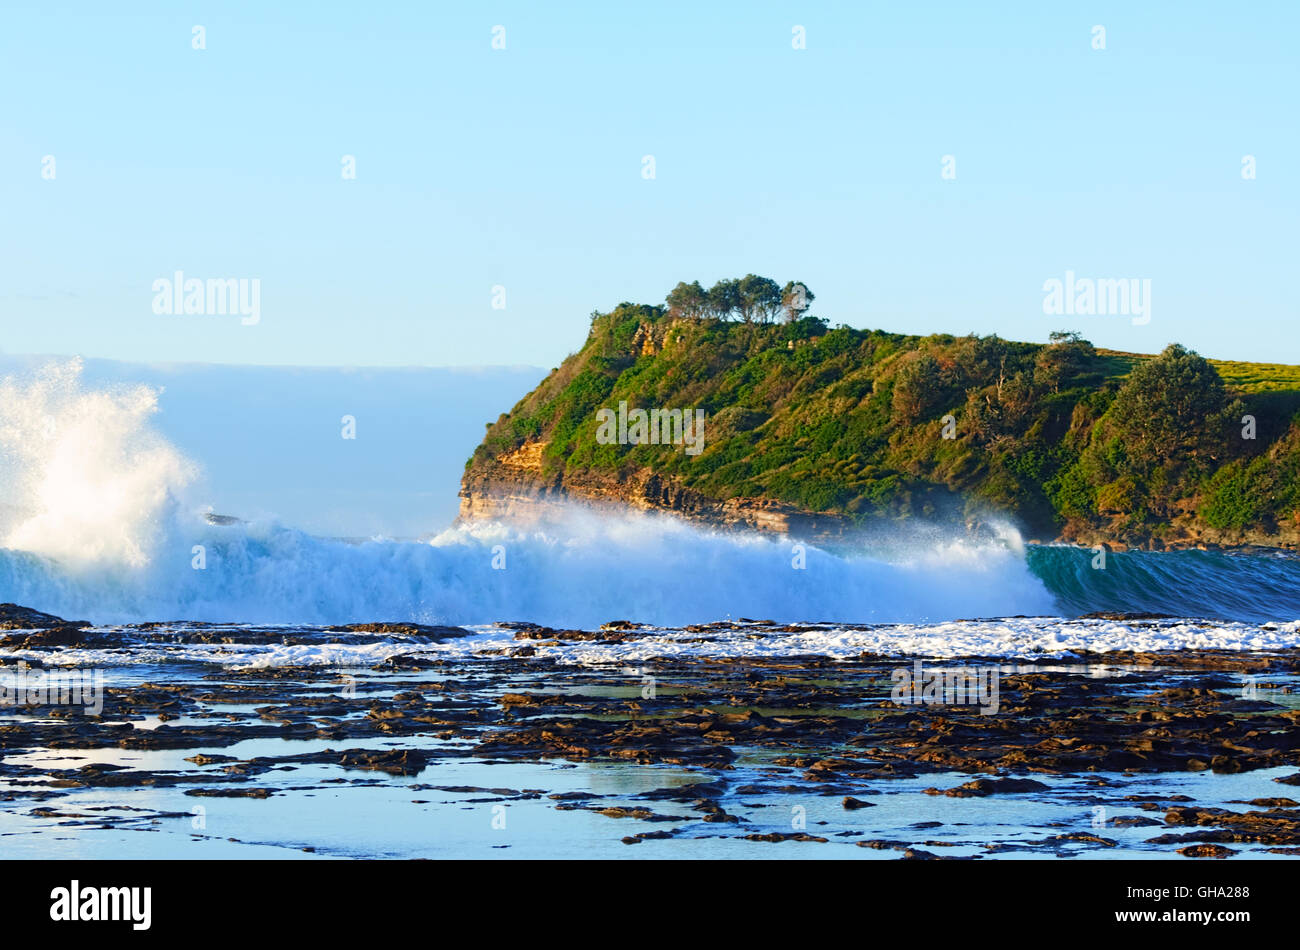 Mer forte à Boat Harbour, Gerringong, Côte d'Illawarra, New South Wales, NSW, Australie Photo Stock